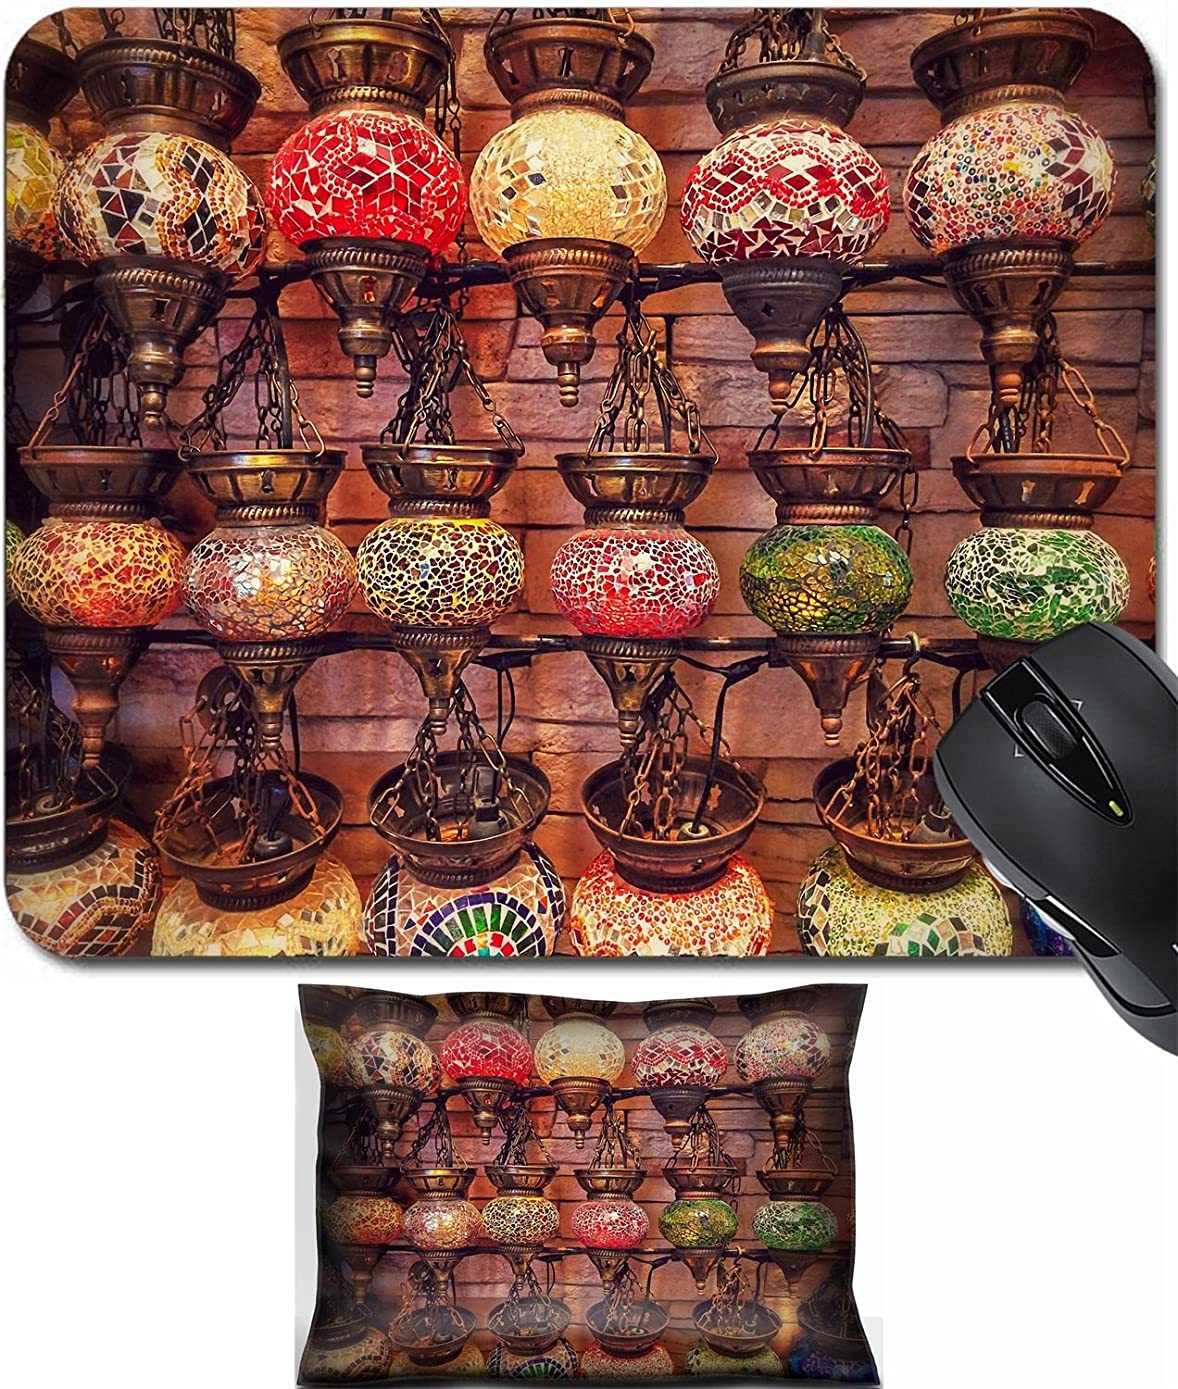 MSD Mouse Wrist Rest and Small Mousepad Set, 2pc Wrist Support design: 30645917 Turkish lamps